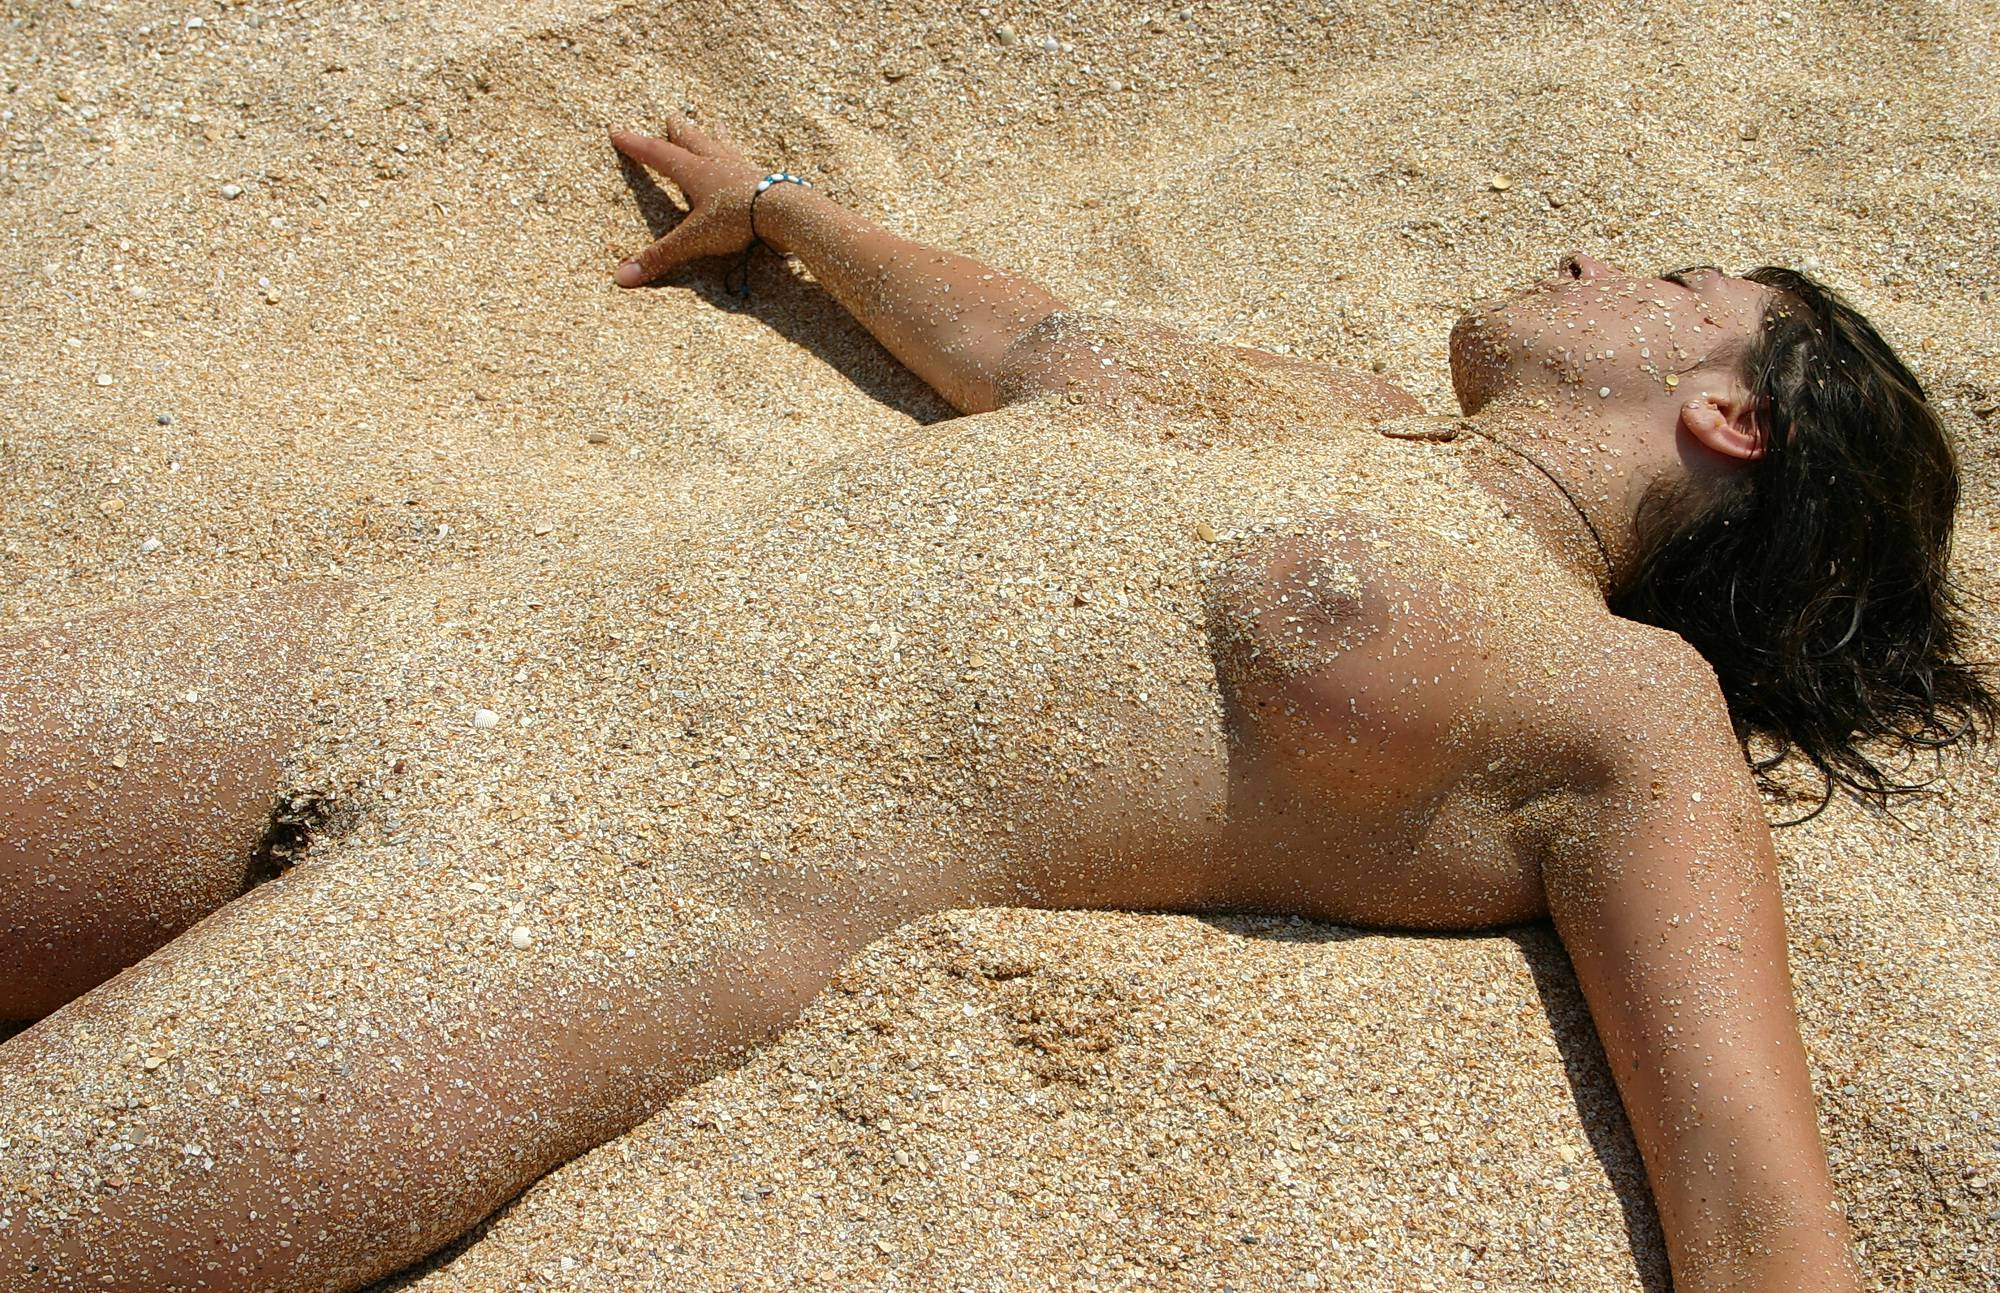 Pure Nudism-Relaxing On The Beach - 2